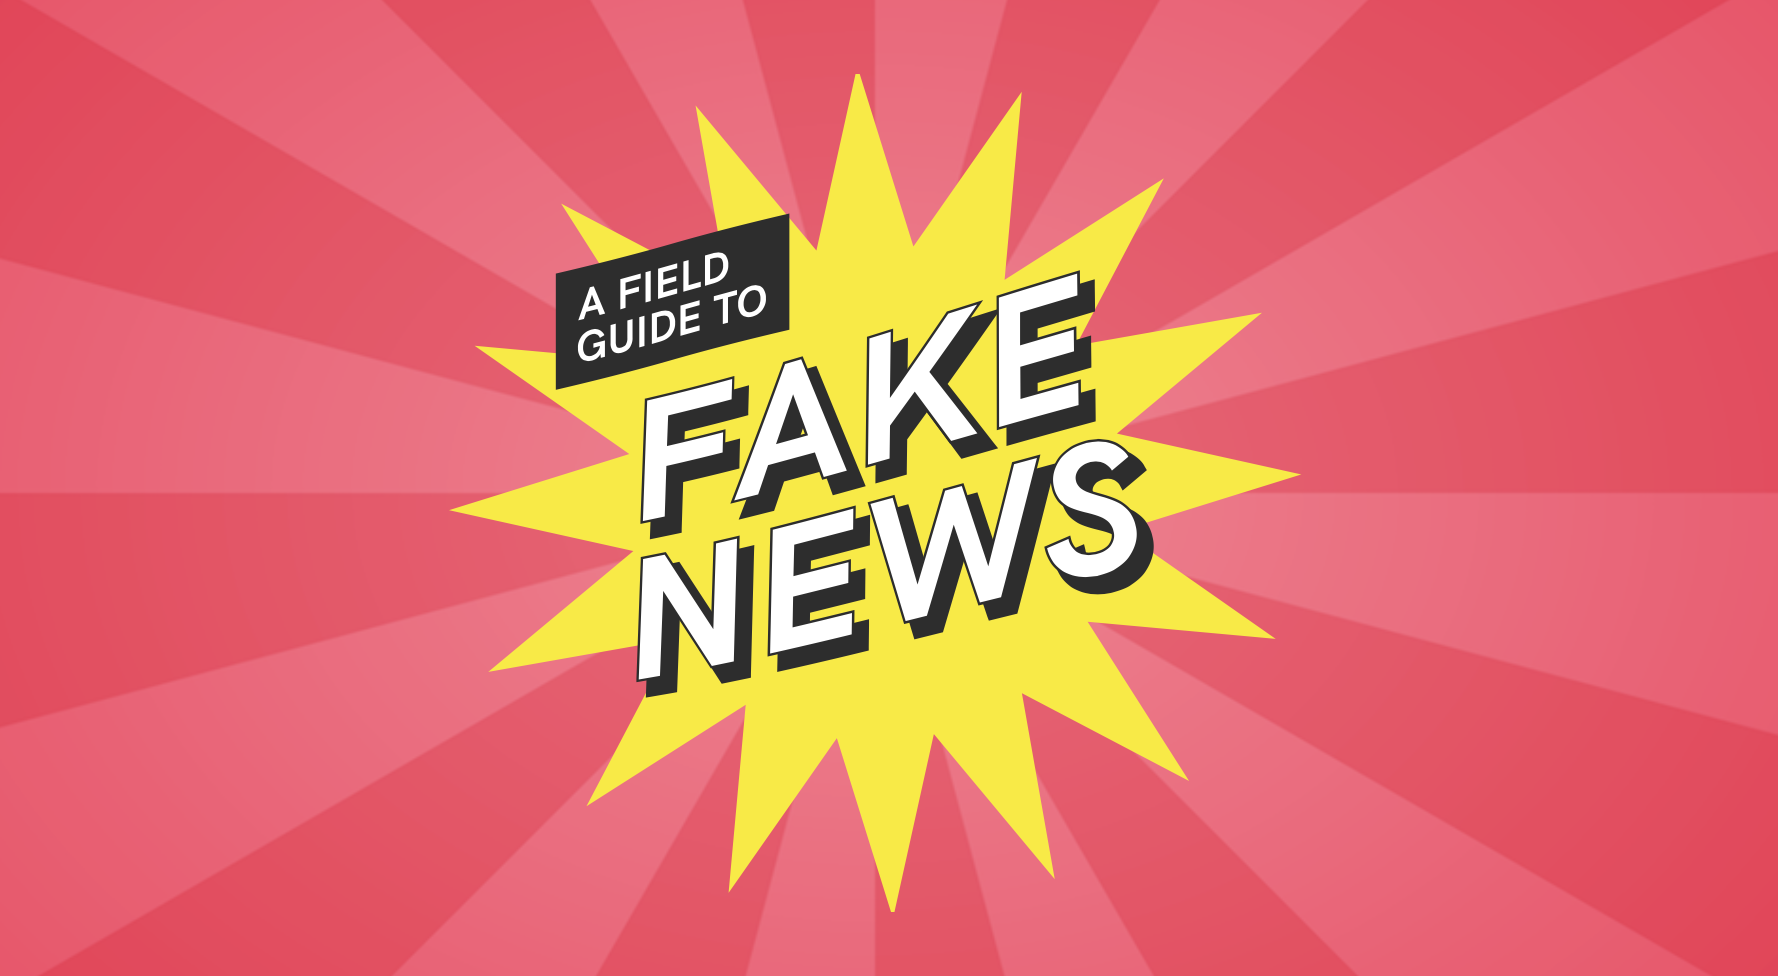 Field Guide to Fake News ()